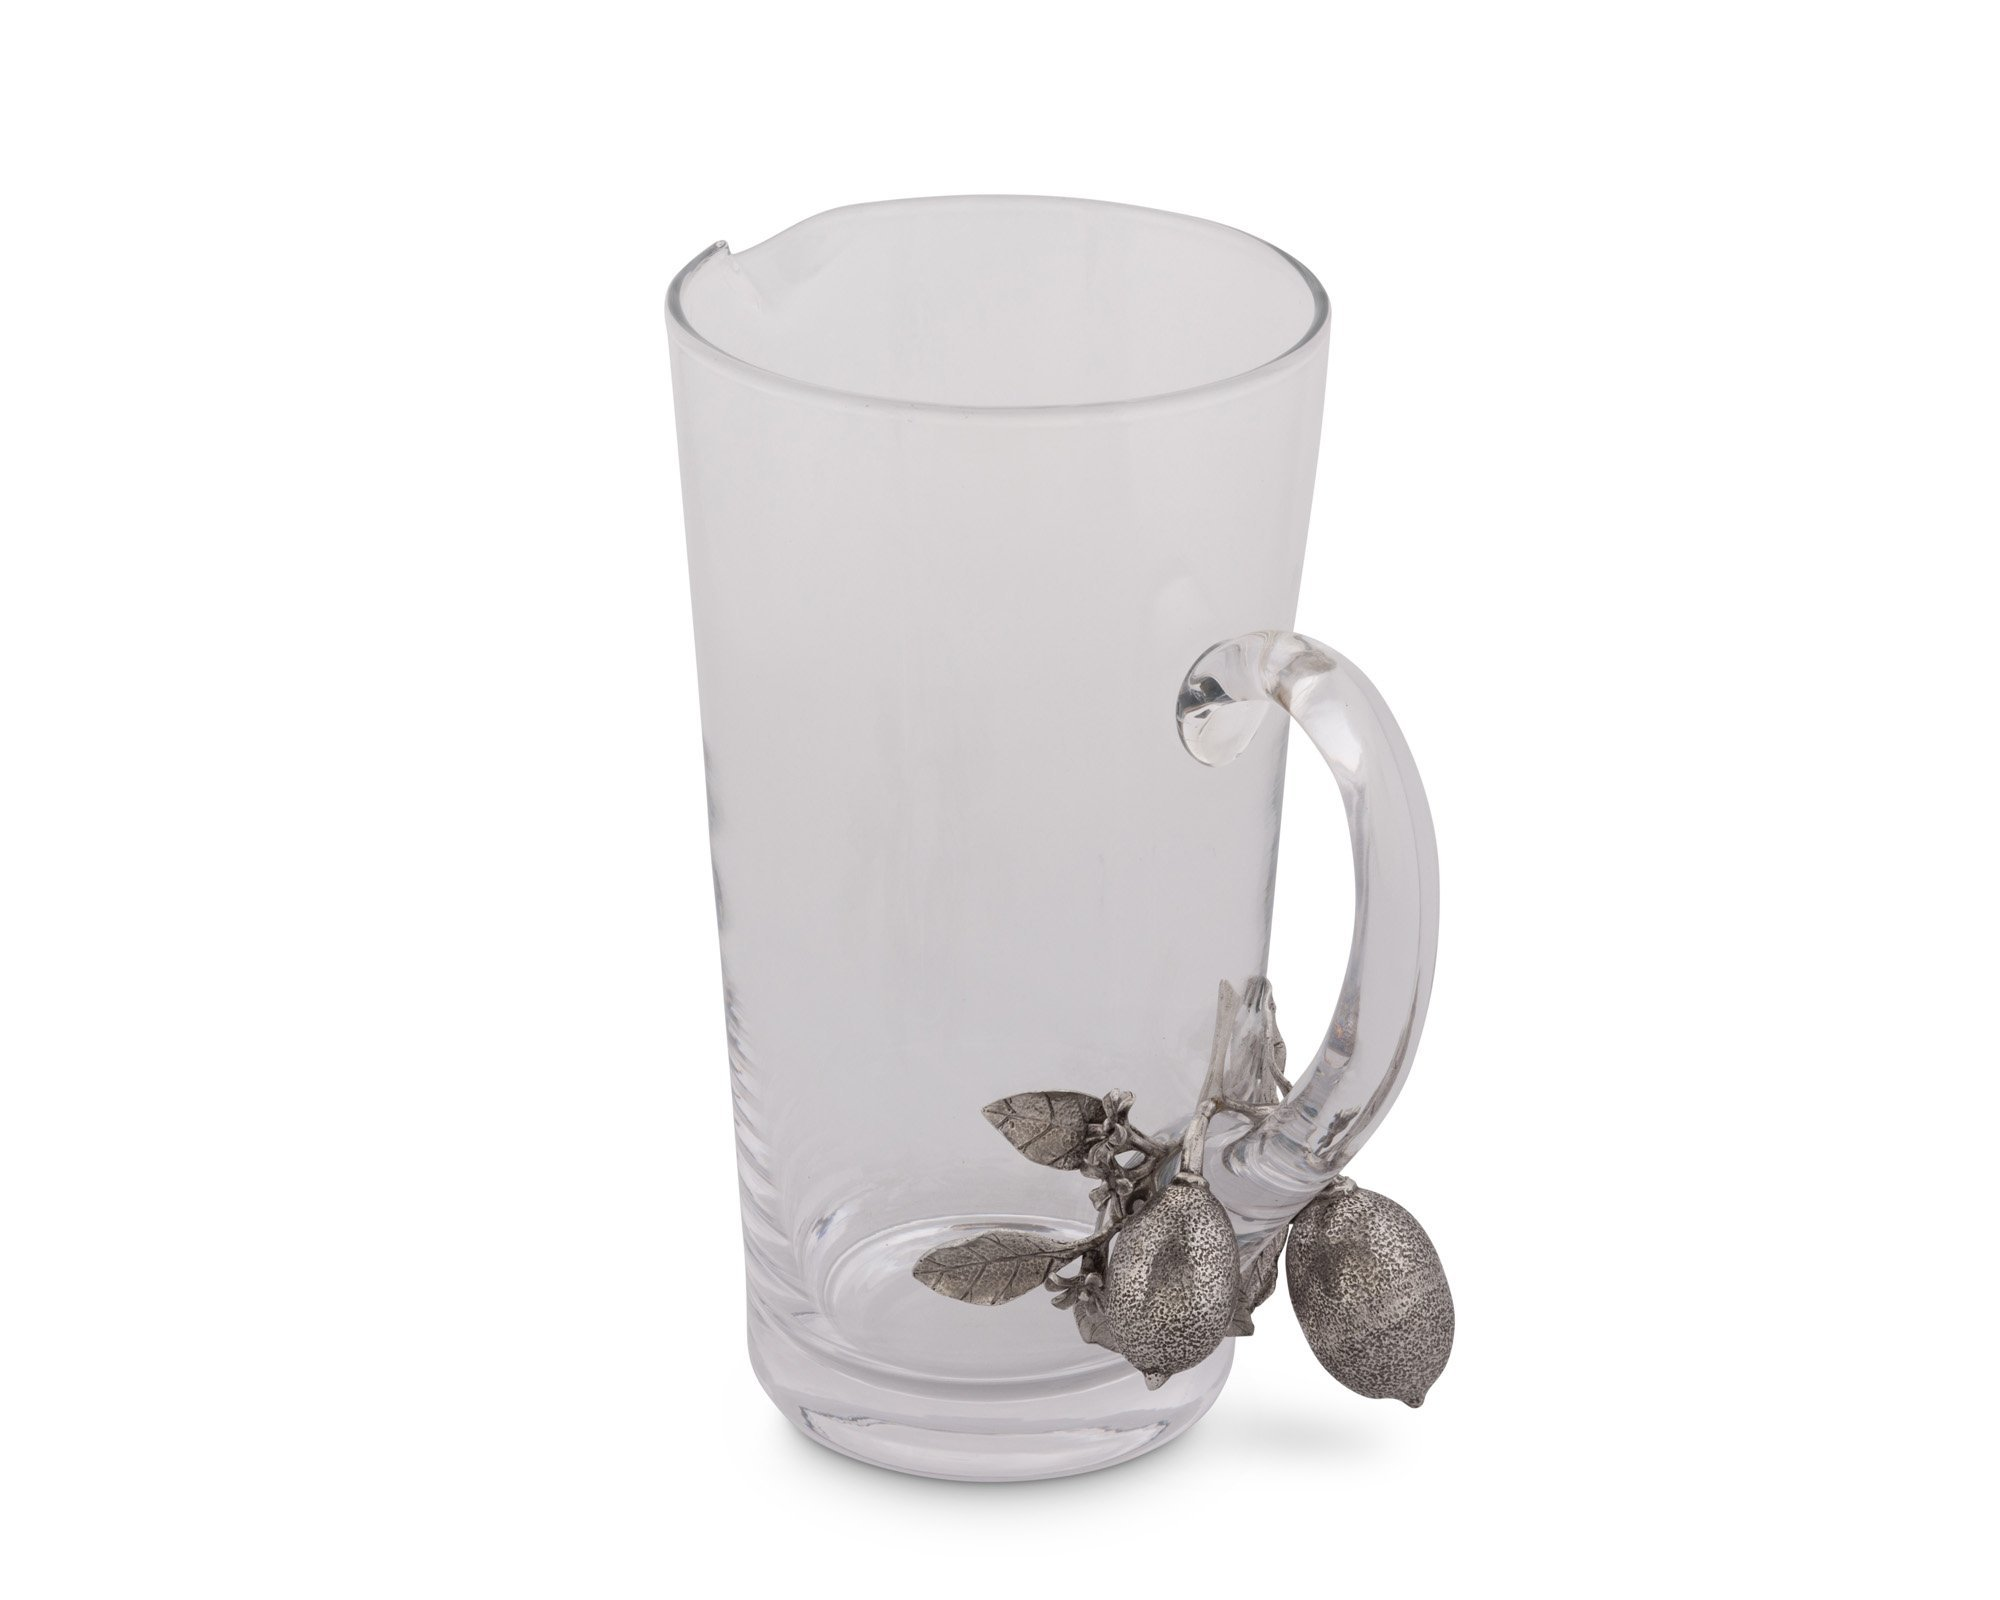 Vagabond House Glass and Pewter Lemon Bouquet Pitcher 9.5'' Tall by Vagabond House (Image #1)